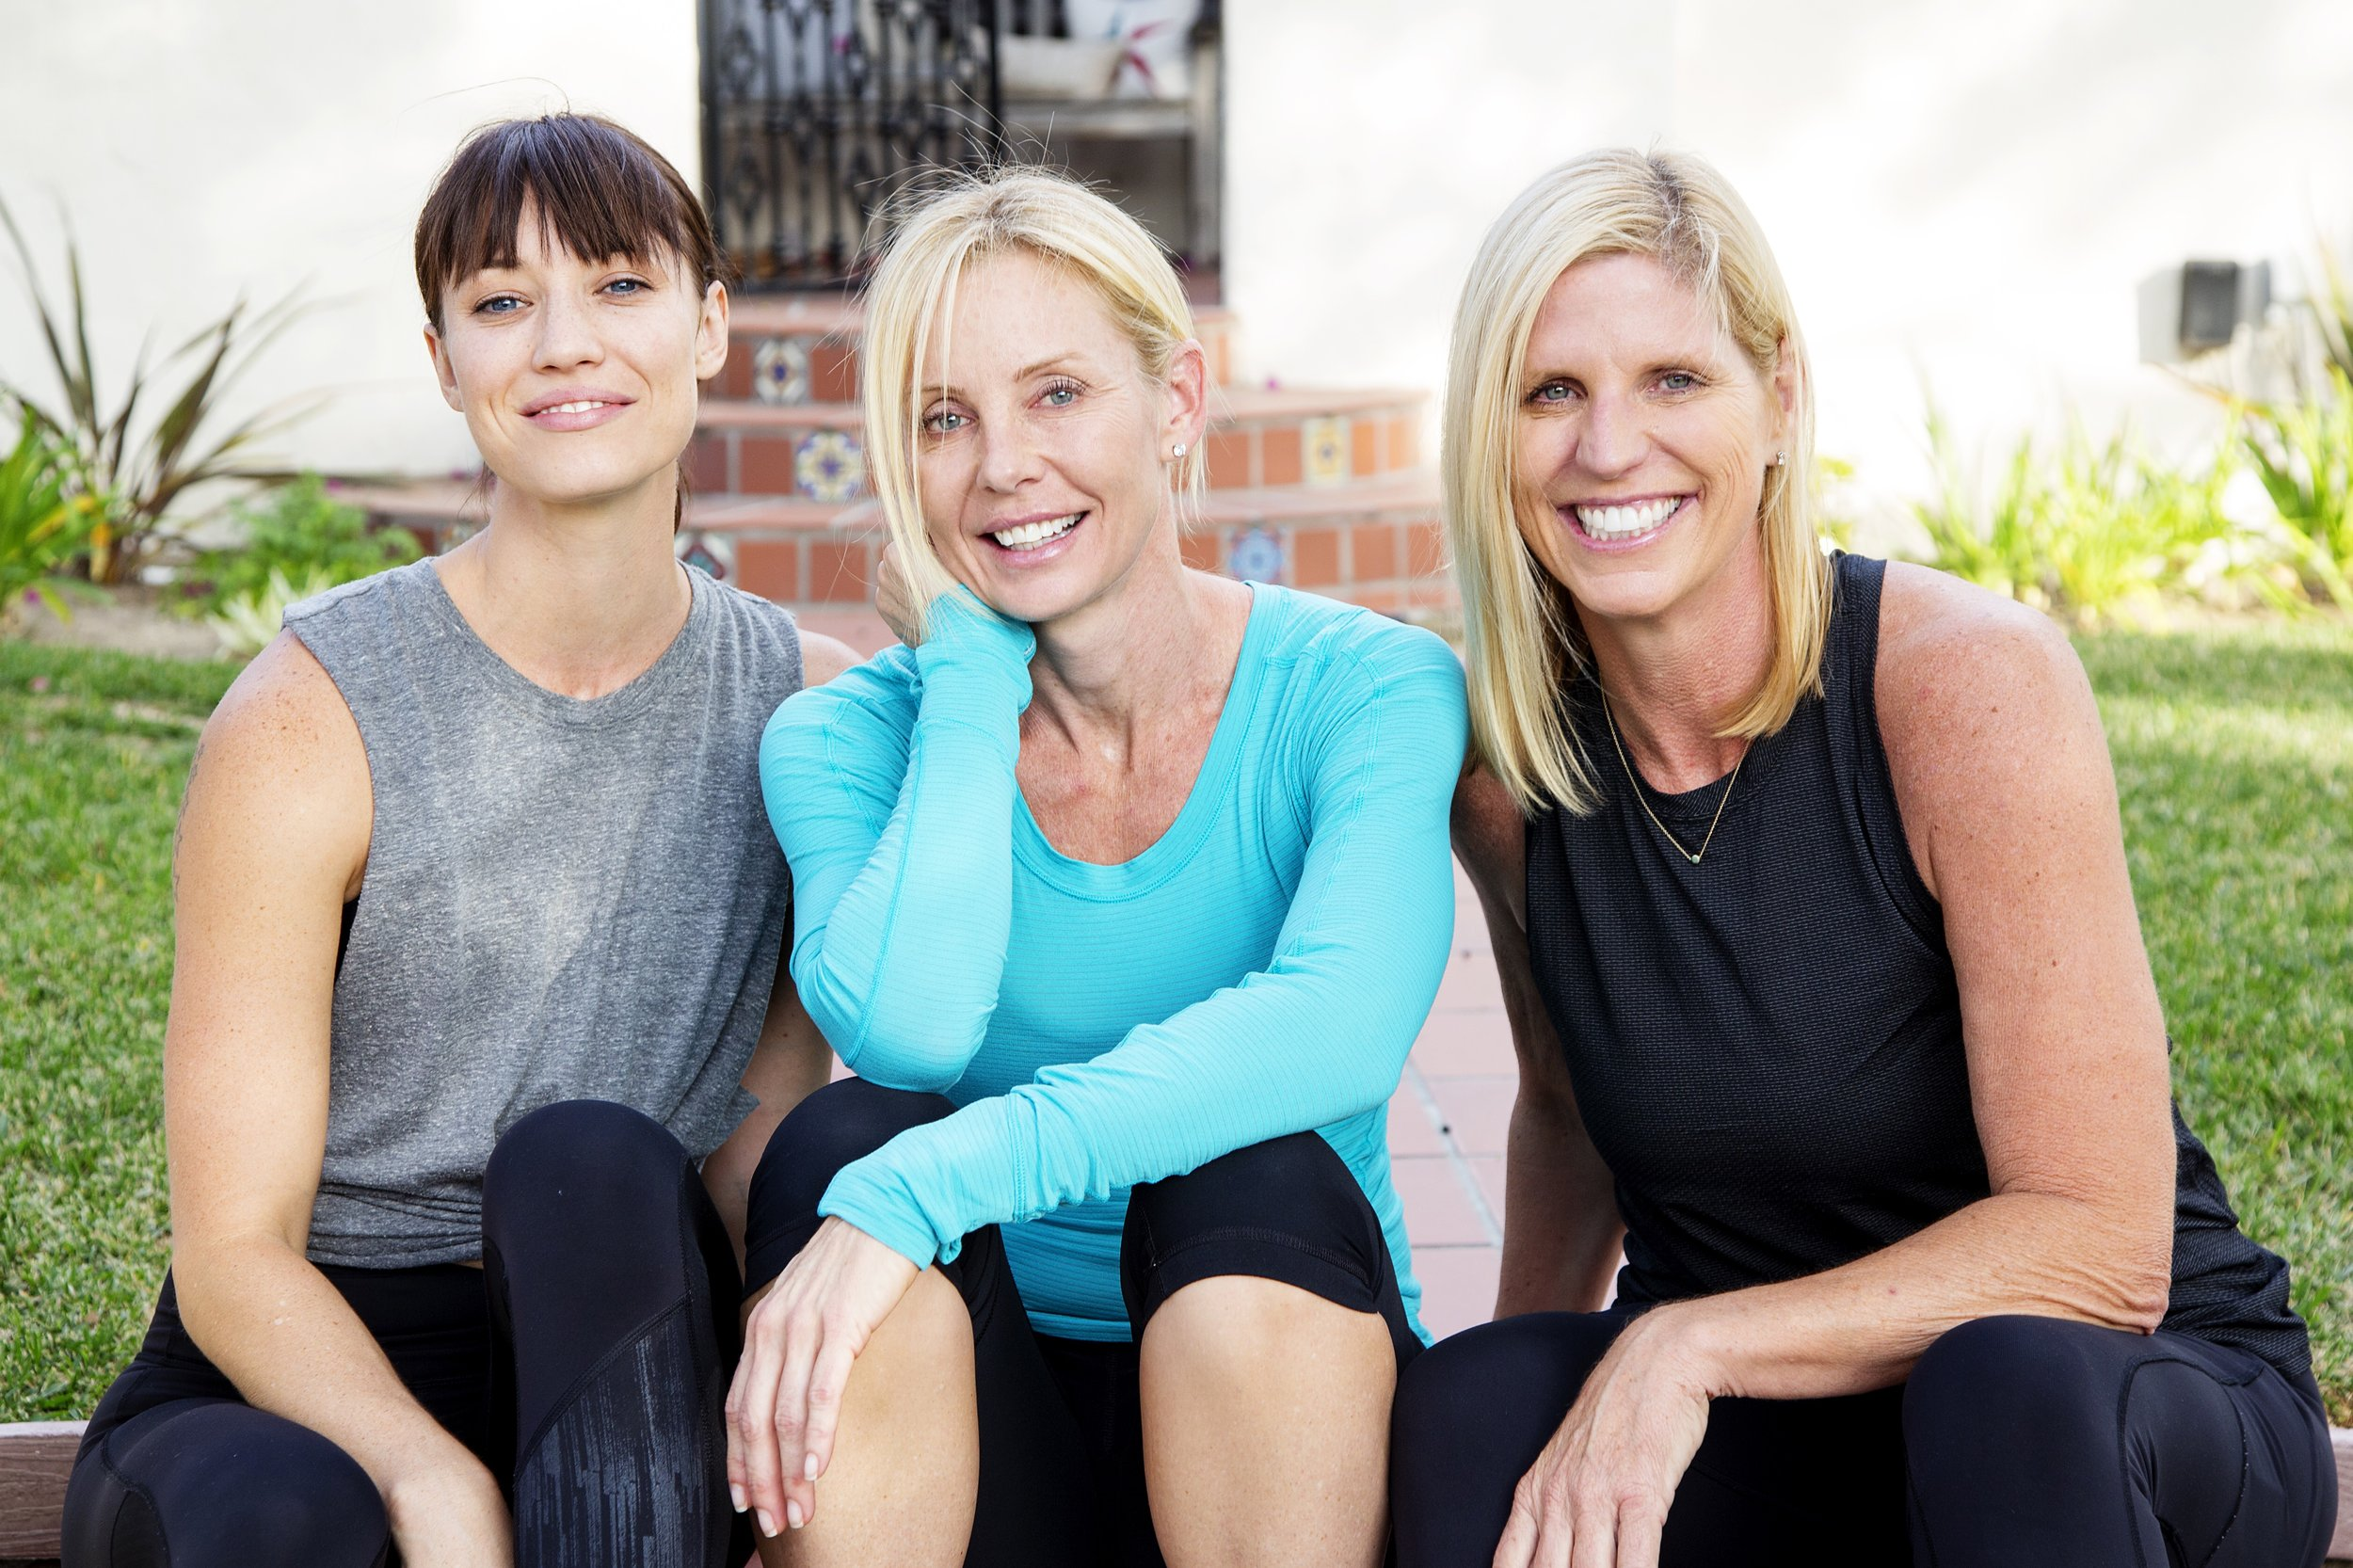 Meet Leanne Pedante, Misa Dugally and Katie Ownbey: the women behind STRIDE Treadmill Running Studio in Pasadena, CA